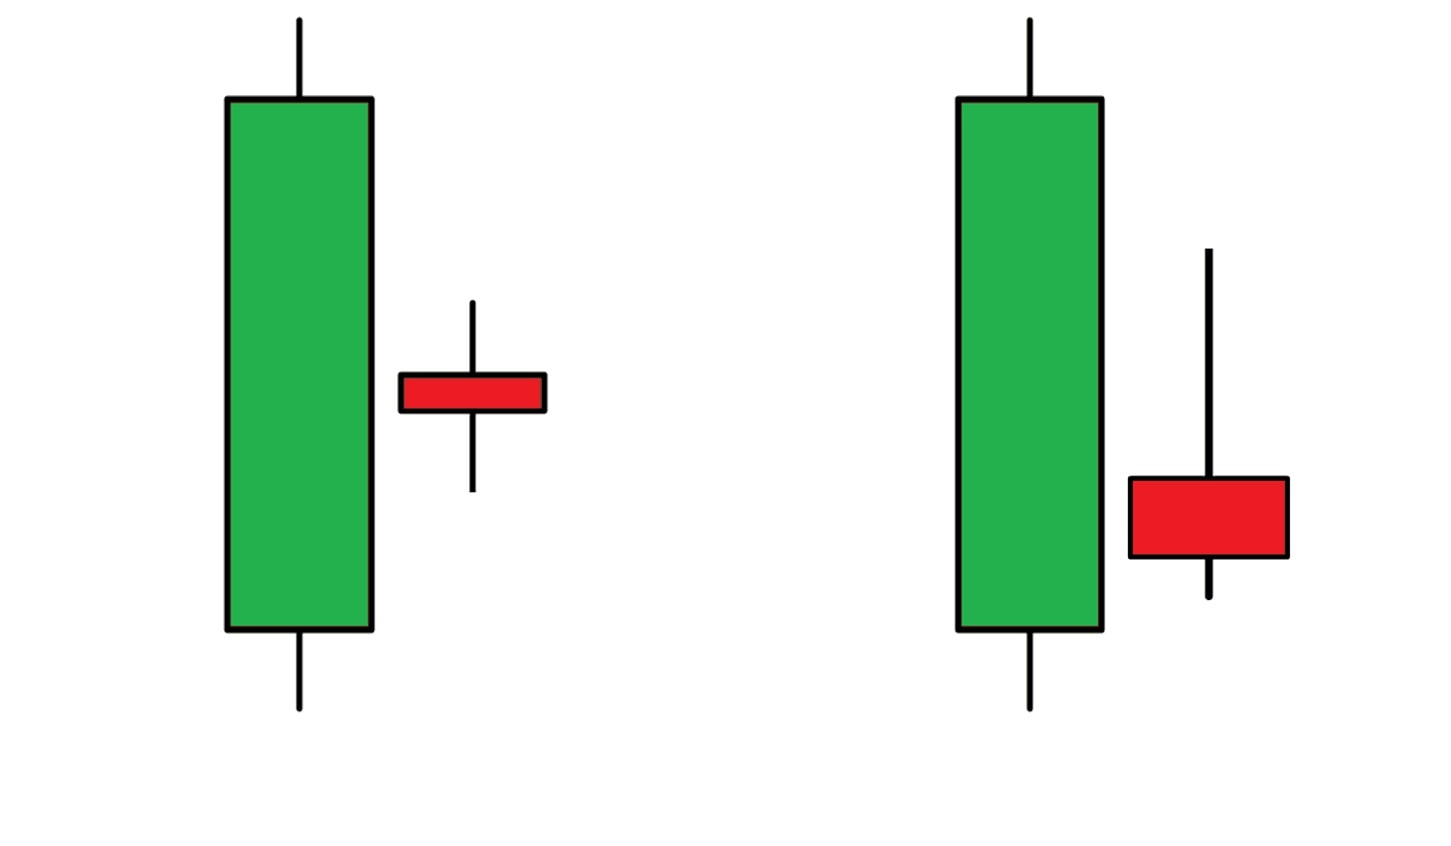 The variant Bearish Harami candlestick pattern